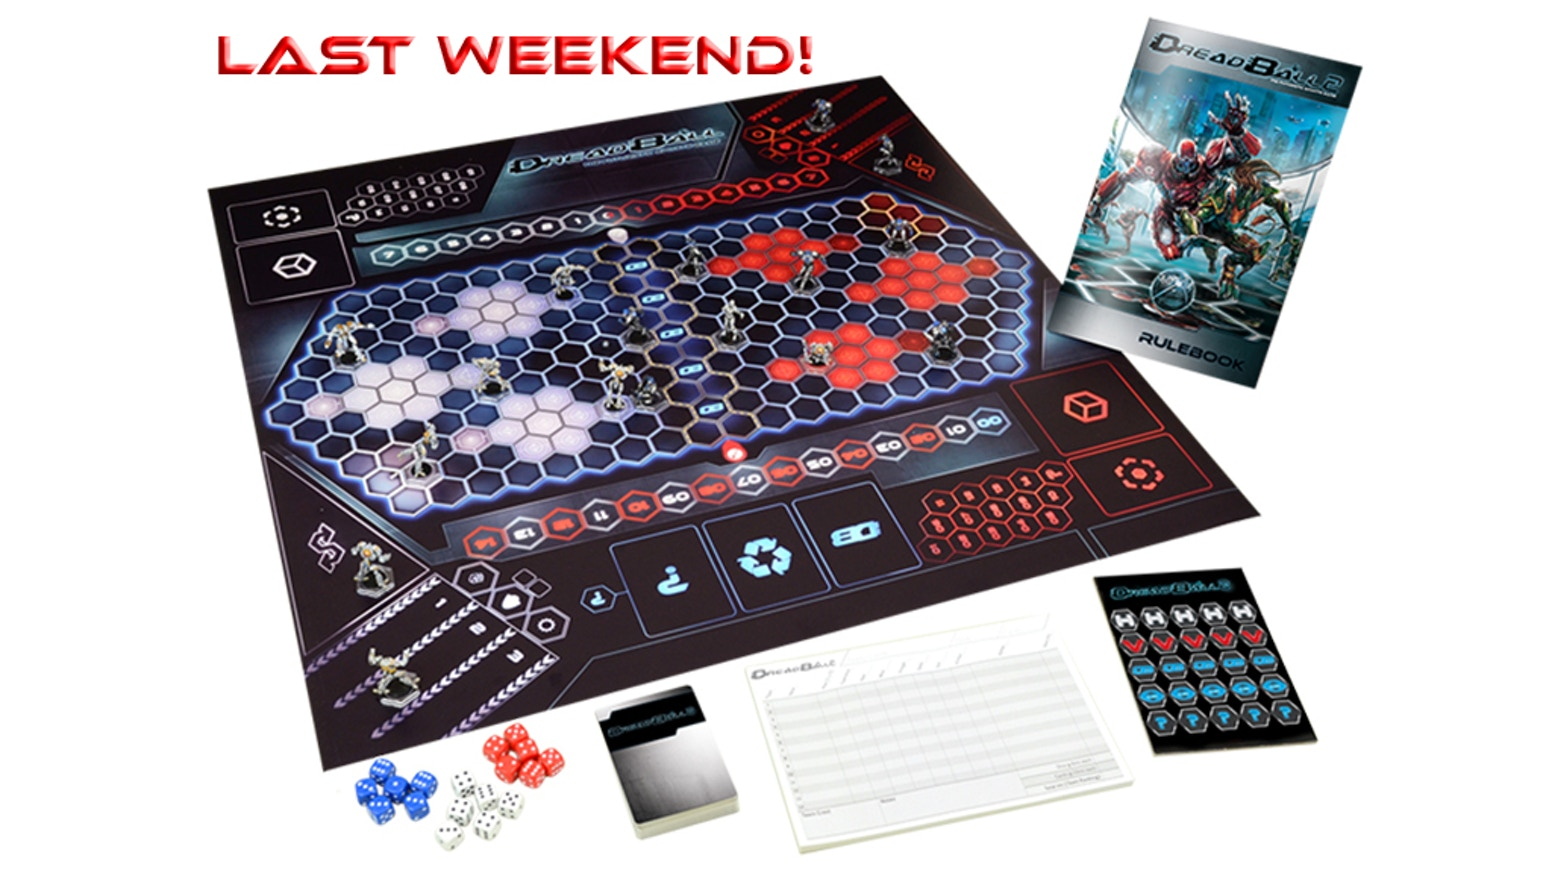 Lead your team to victory on the bloodstained pitches of the greatest sport ever played in this fast paced board game from Mantic!